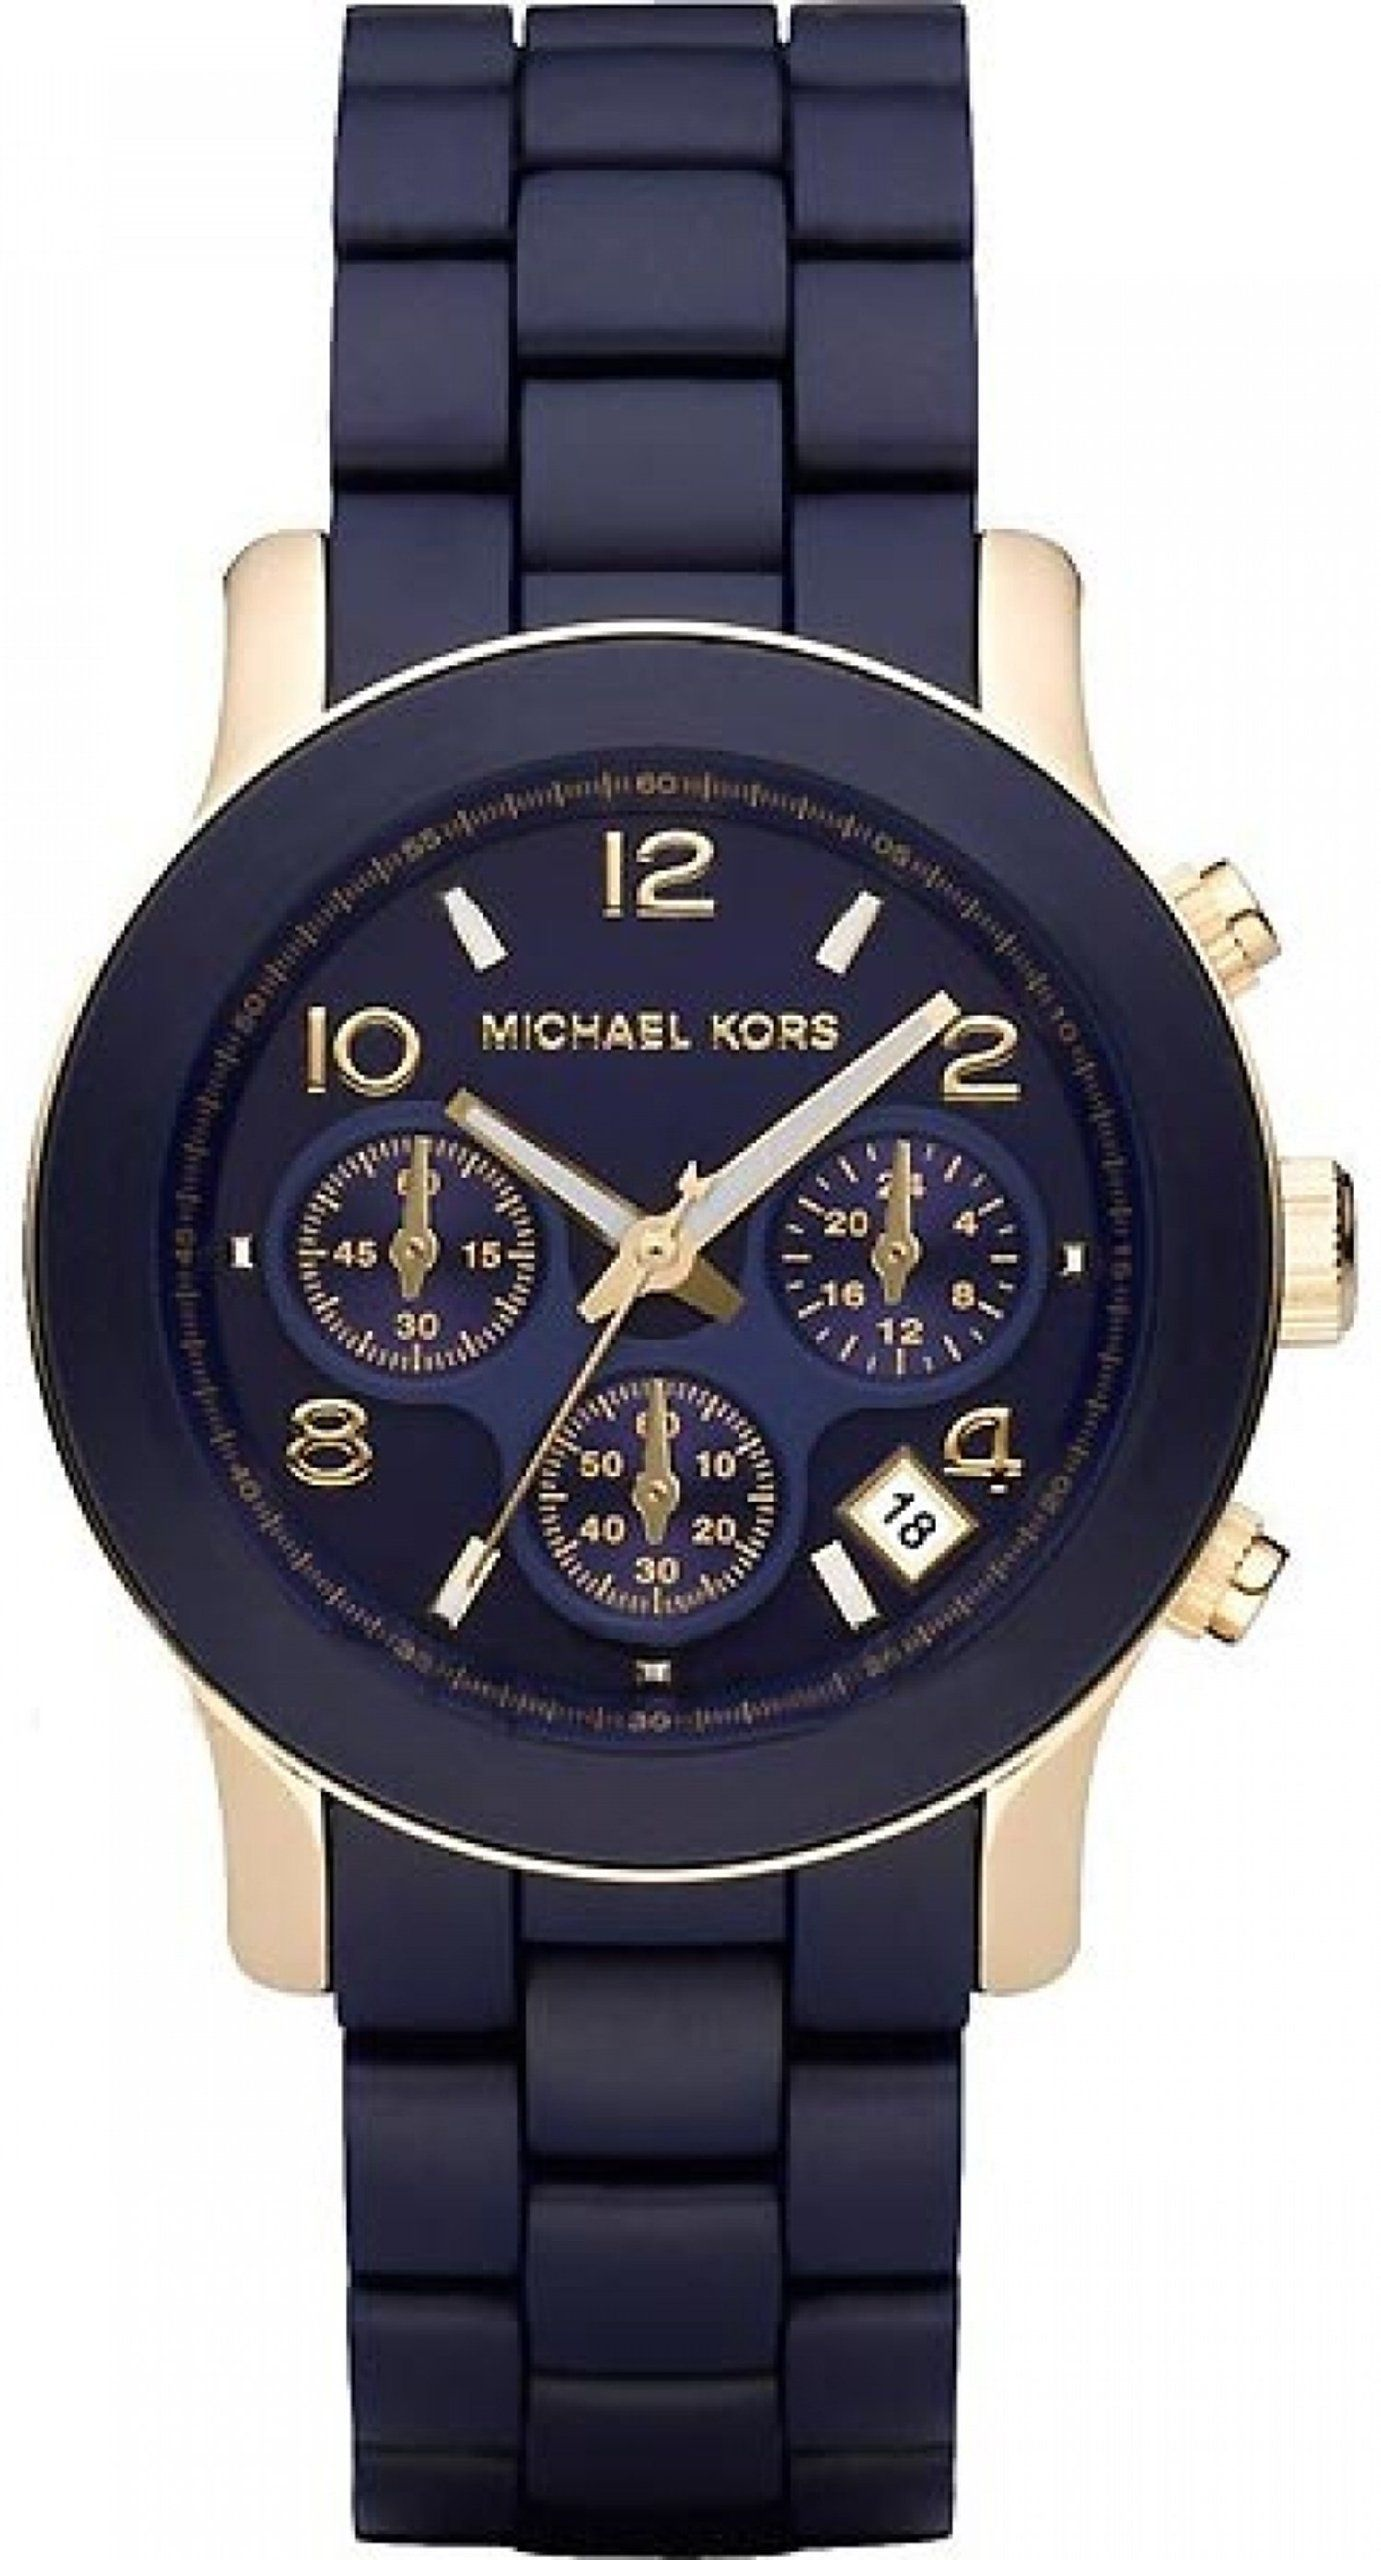 0a1bcfcff19c Michael Kors Women s MK5316 Navy Silicone Wrapped Runway Watch ...